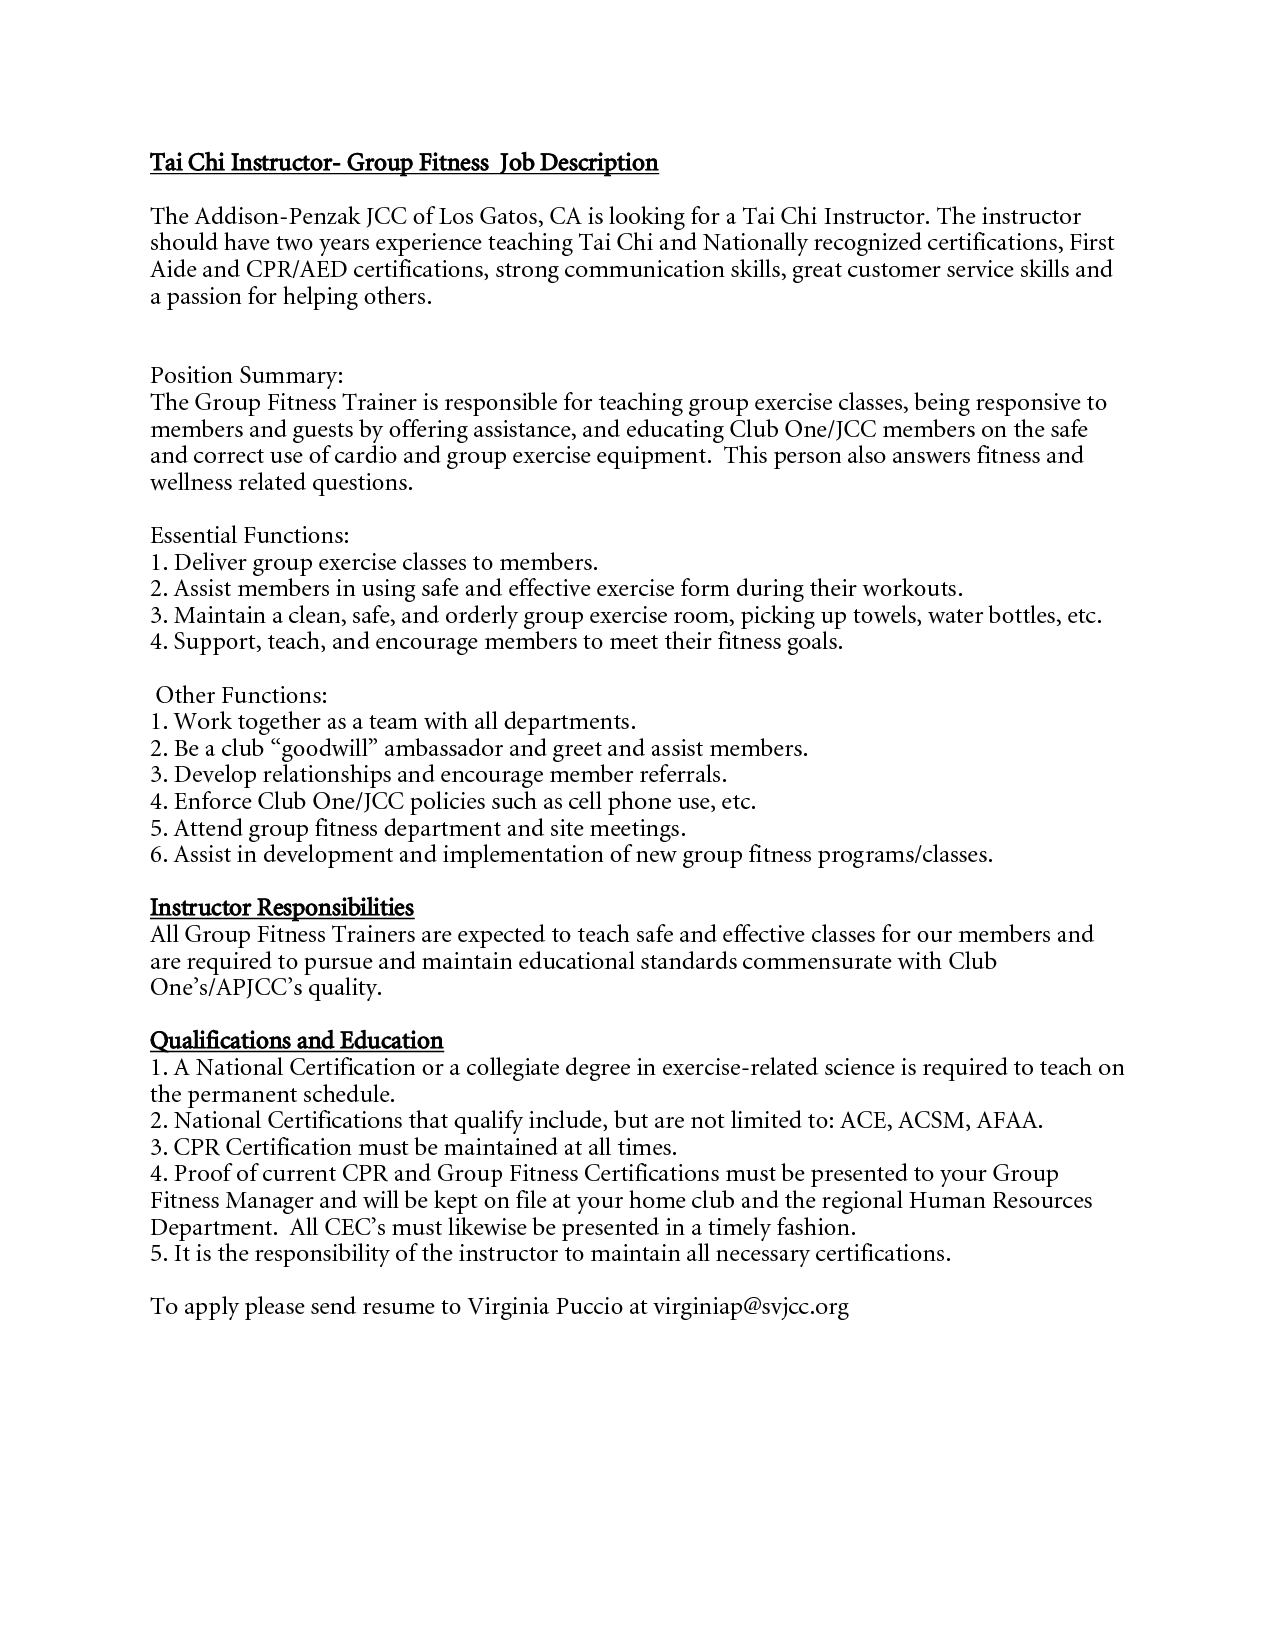 fitness instructor job descriptions